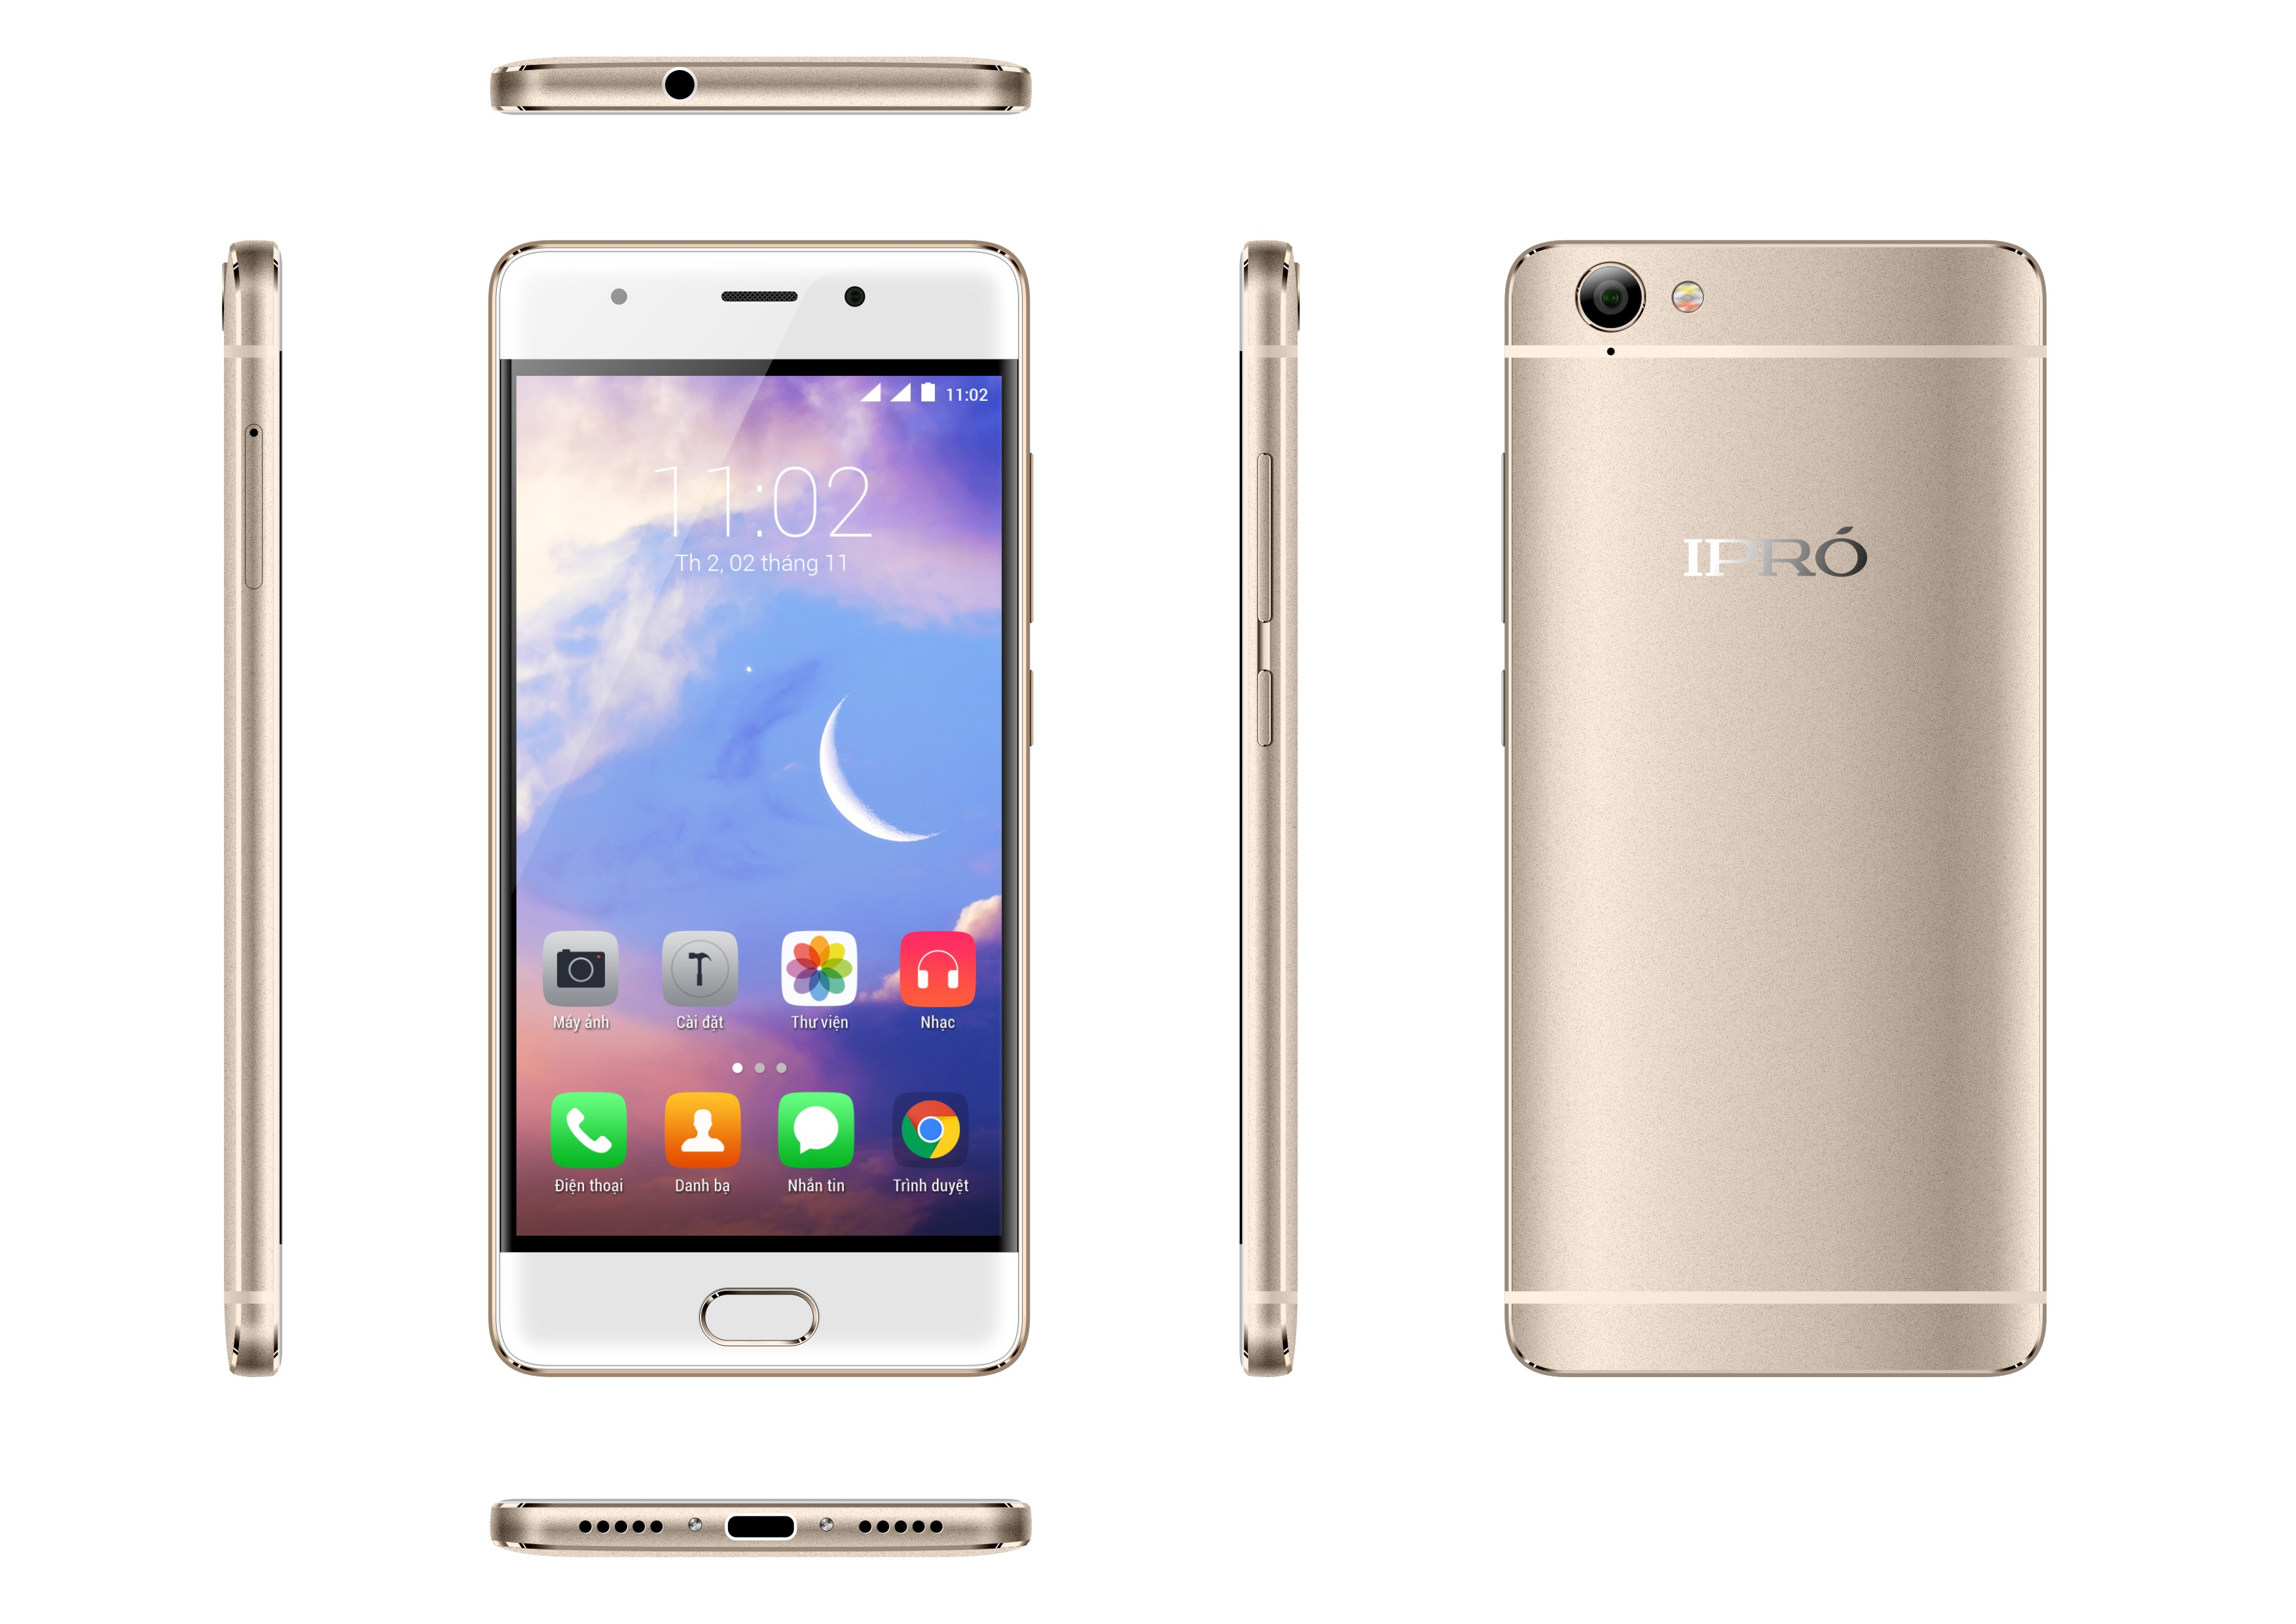 New Arrival Hottest 2016 3G 4G 2G iPRO I950D 32GB 64GB Smart Phone used mobile phone wholesale dubai